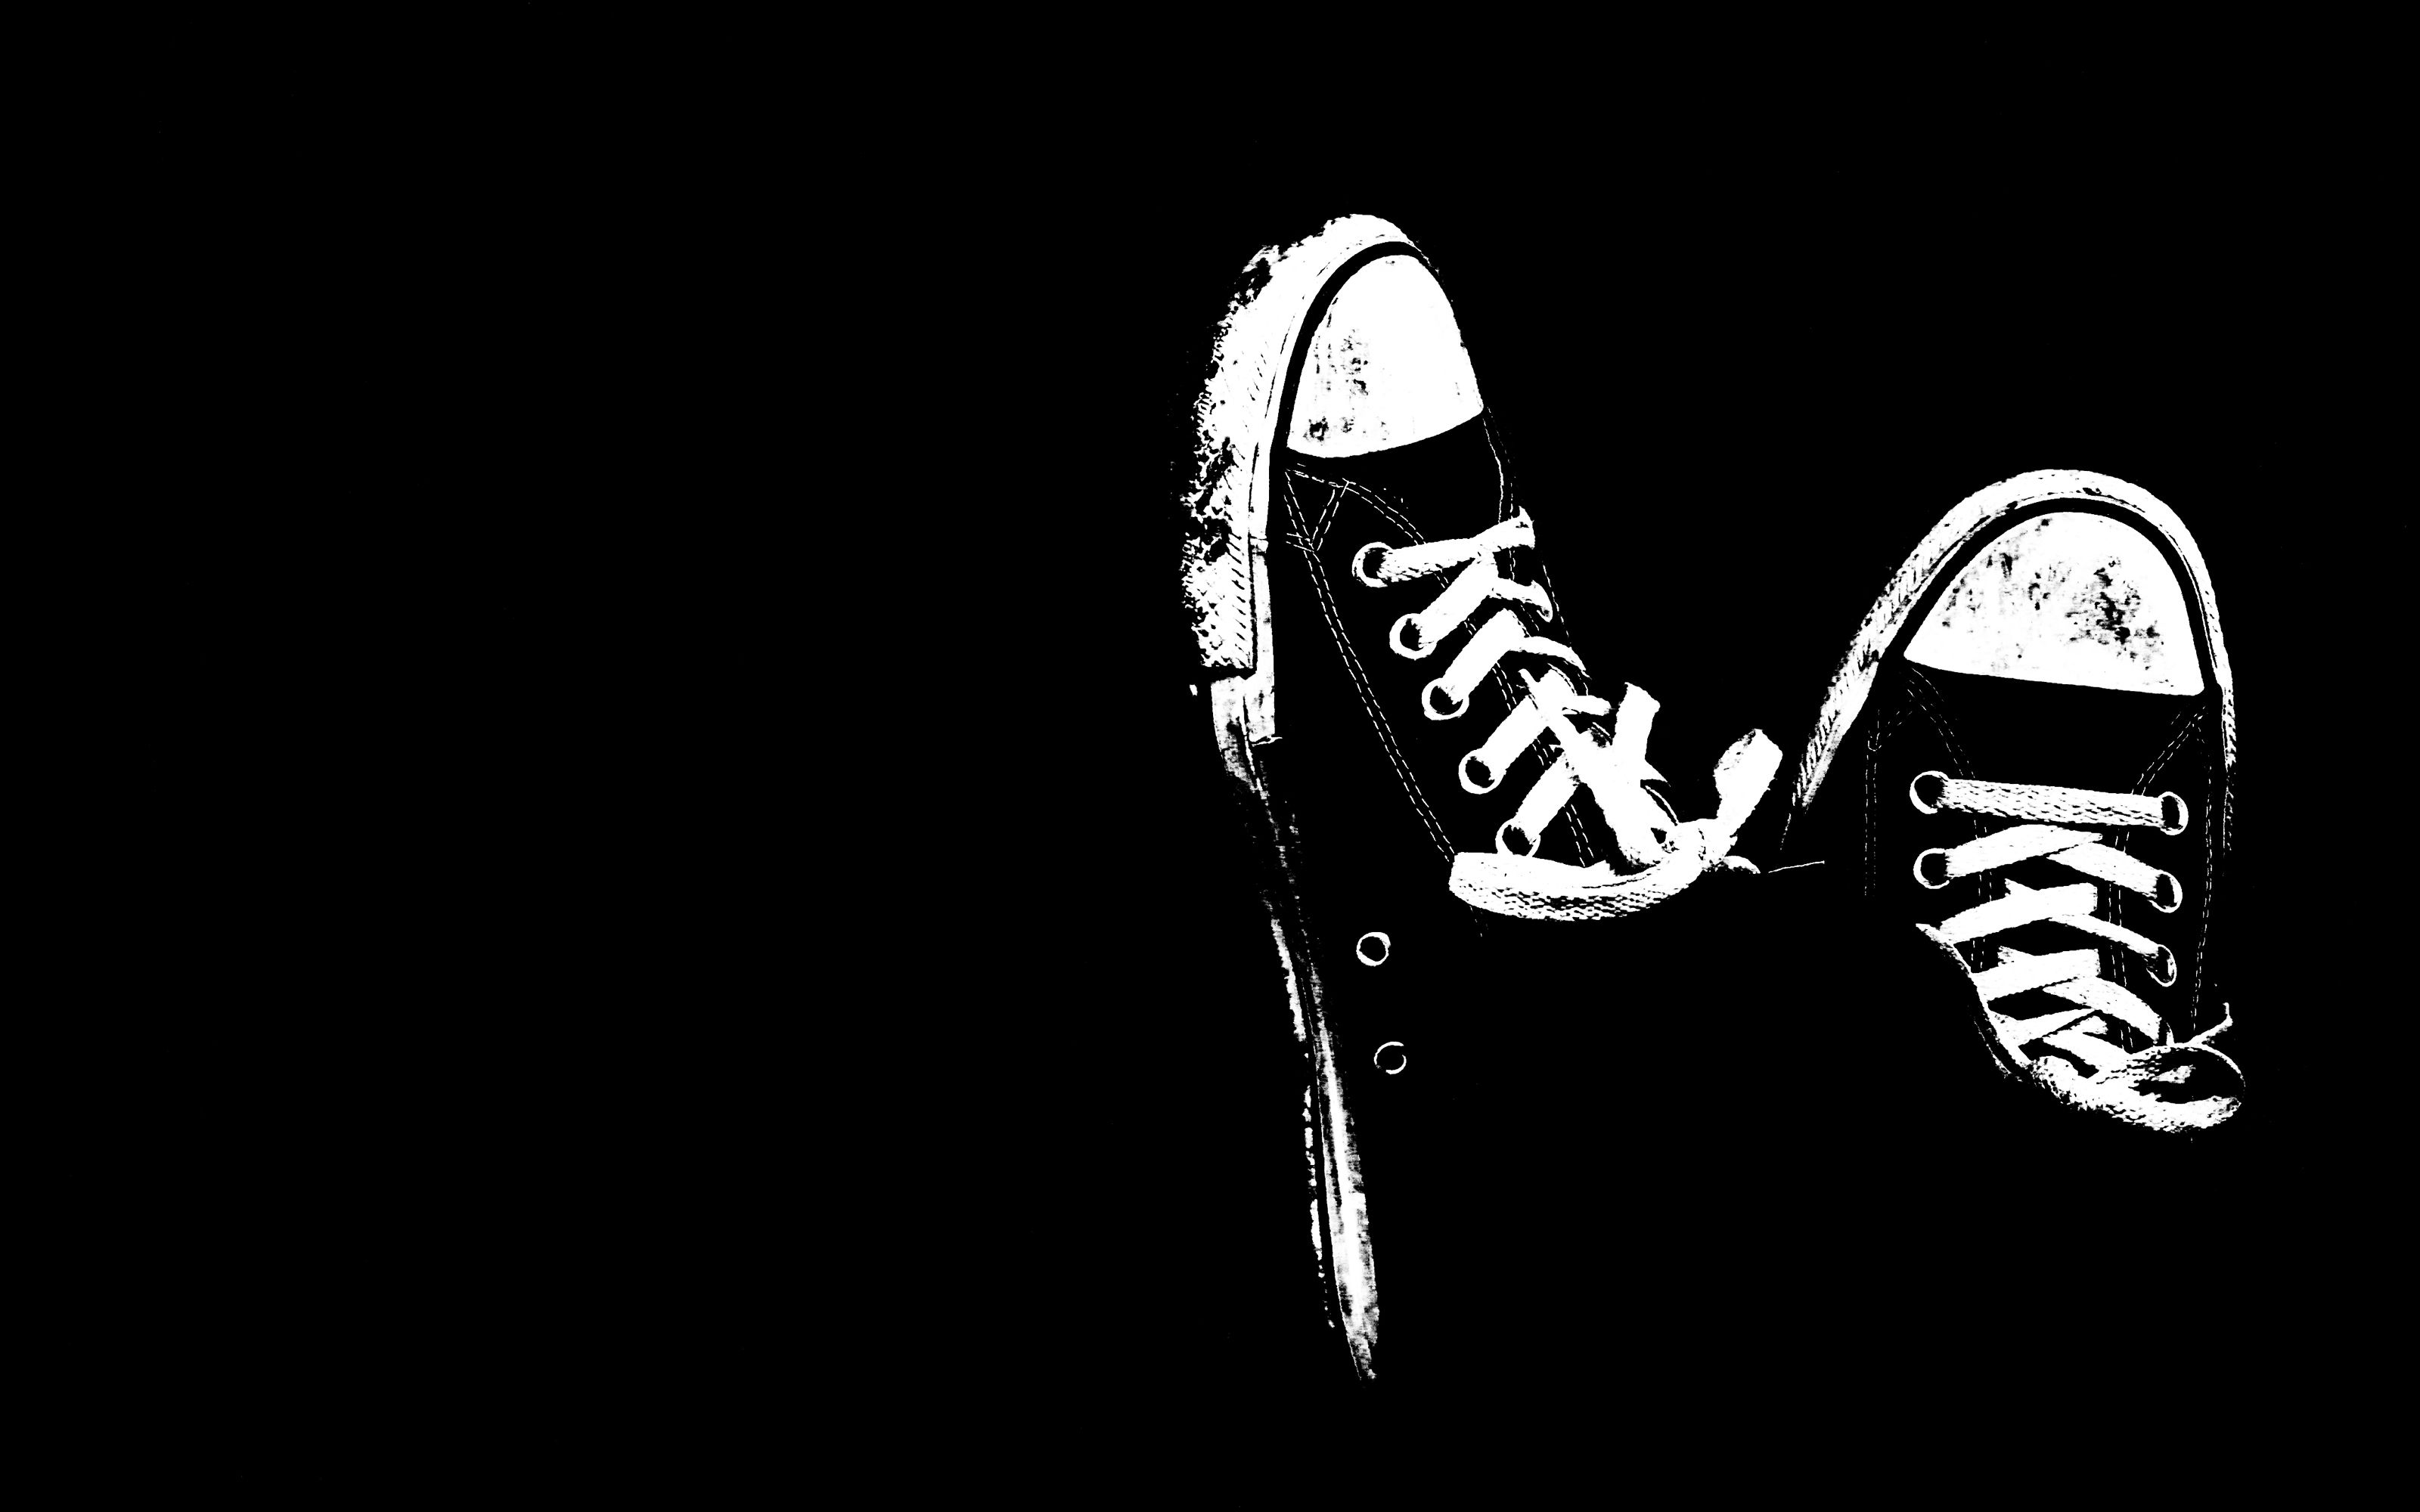 Cool Abstract Shoes Black Background Hd Wallpaper Images Free